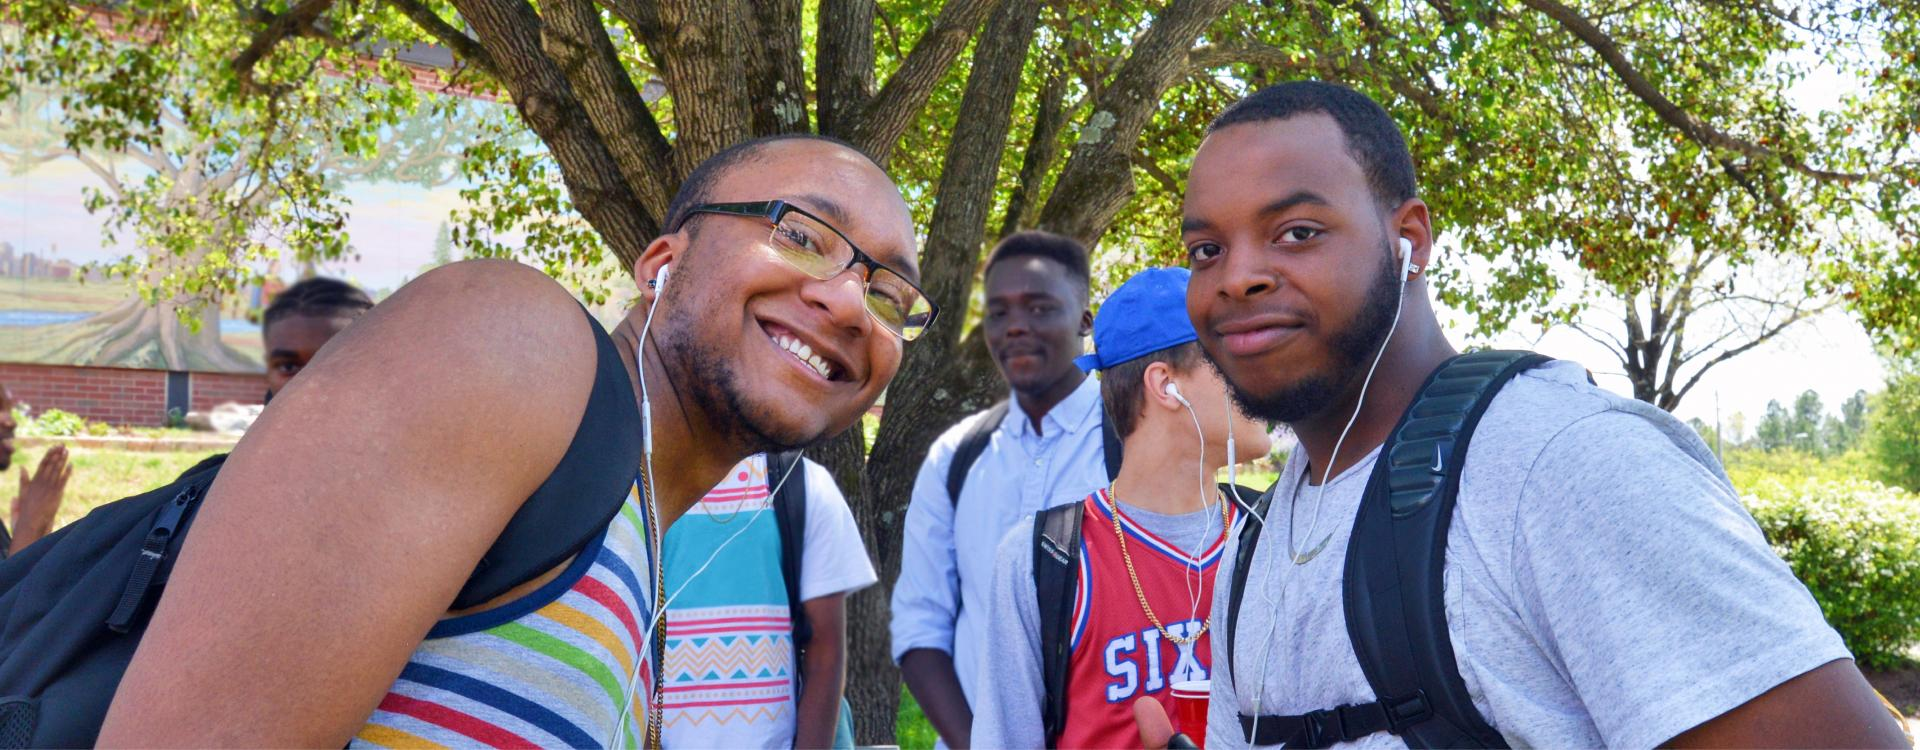 two students on main campus plaza outside smiling at camera